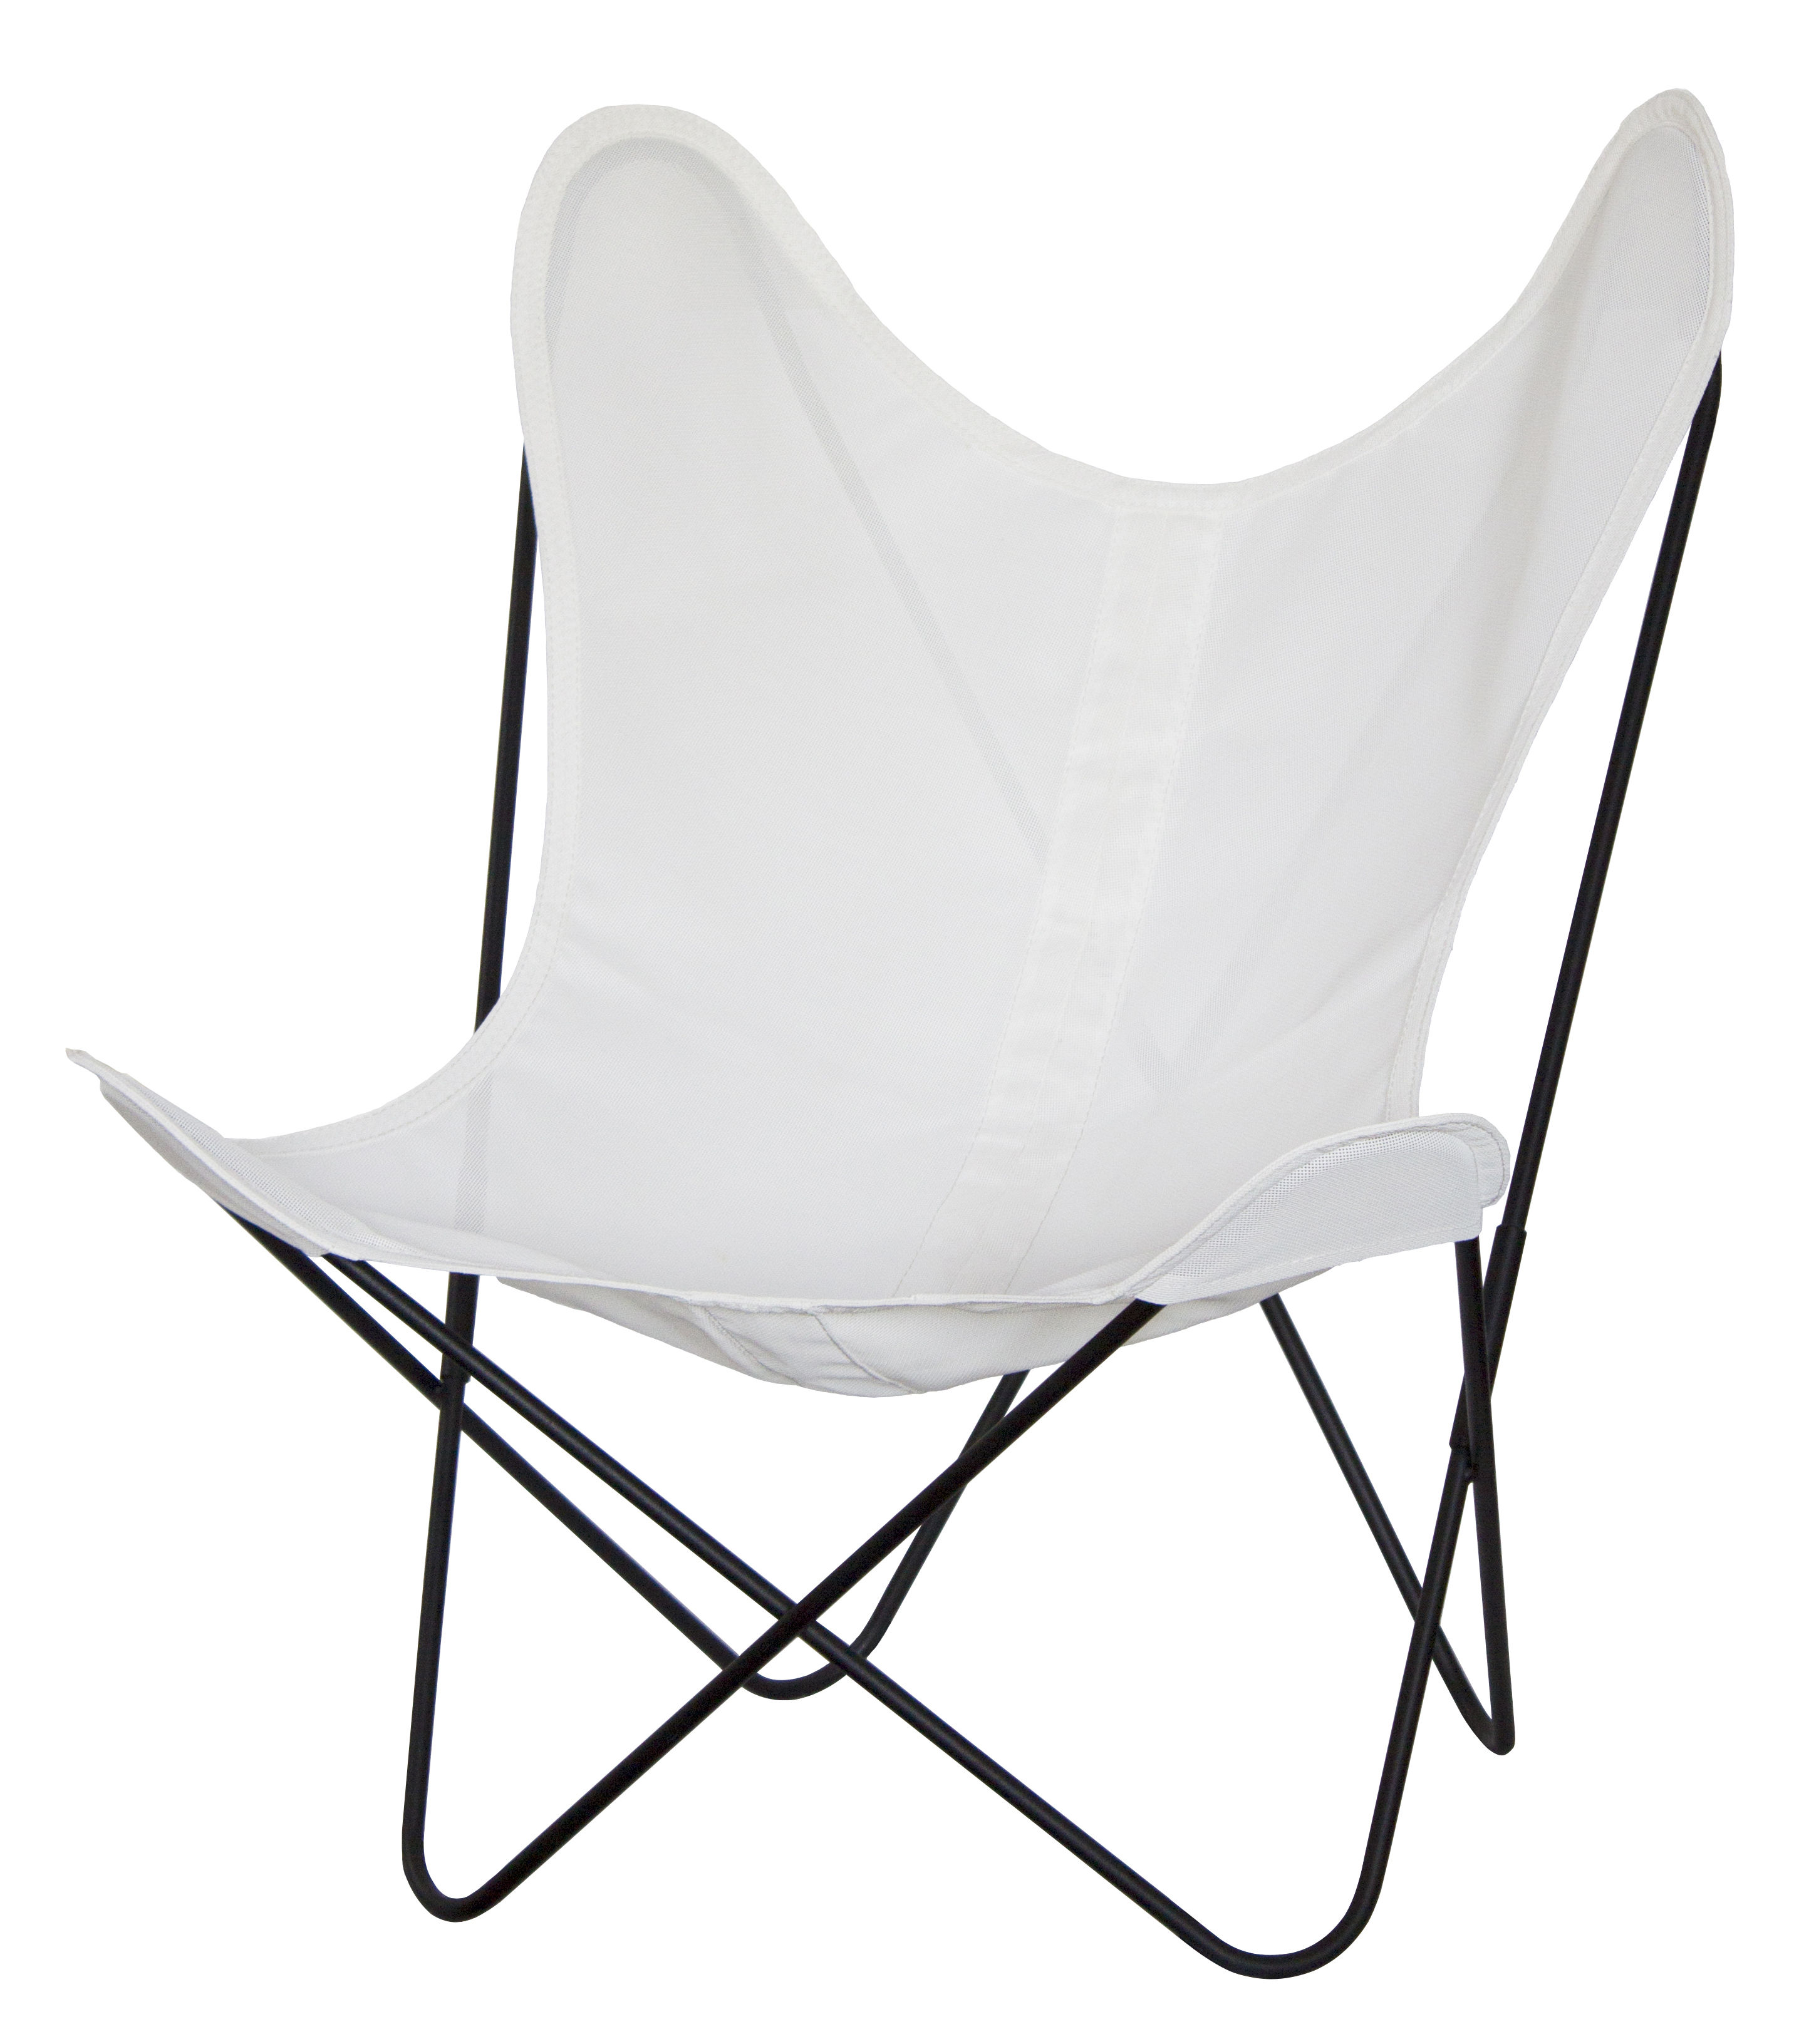 Outdoor - Chairs - AA Butterfly Armchair - Fabric - Black structure by AA-New Design - Black structure / Ivory fabric - Lacquered steel, Sunnyline canvas